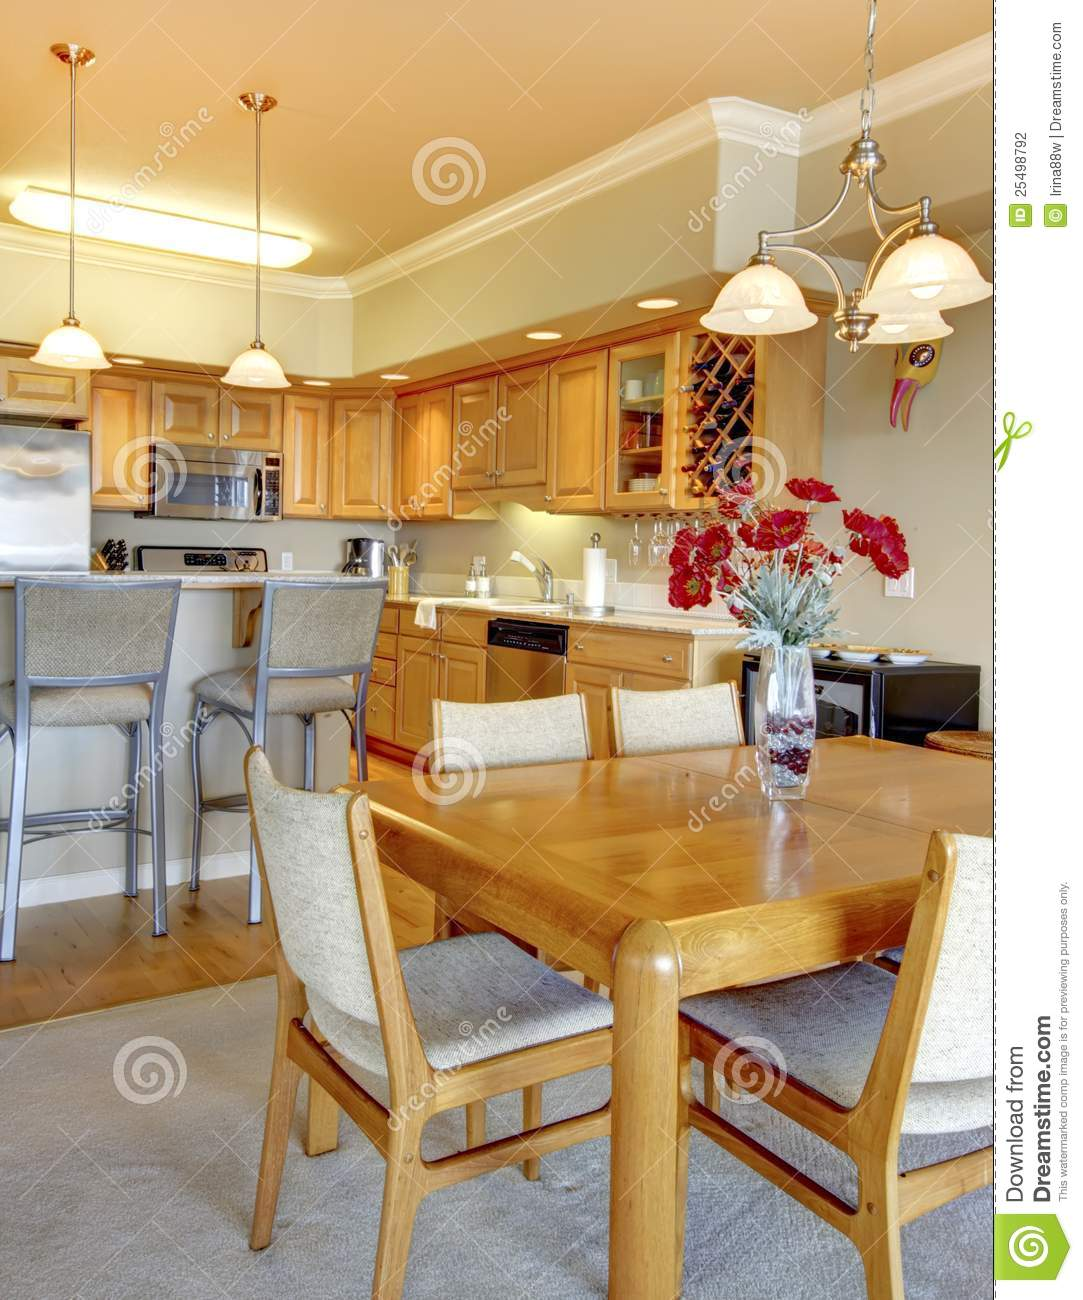 Dining room near luxury kitchen in apartment stock photography image 25498792 - Luxury kitchen room ...